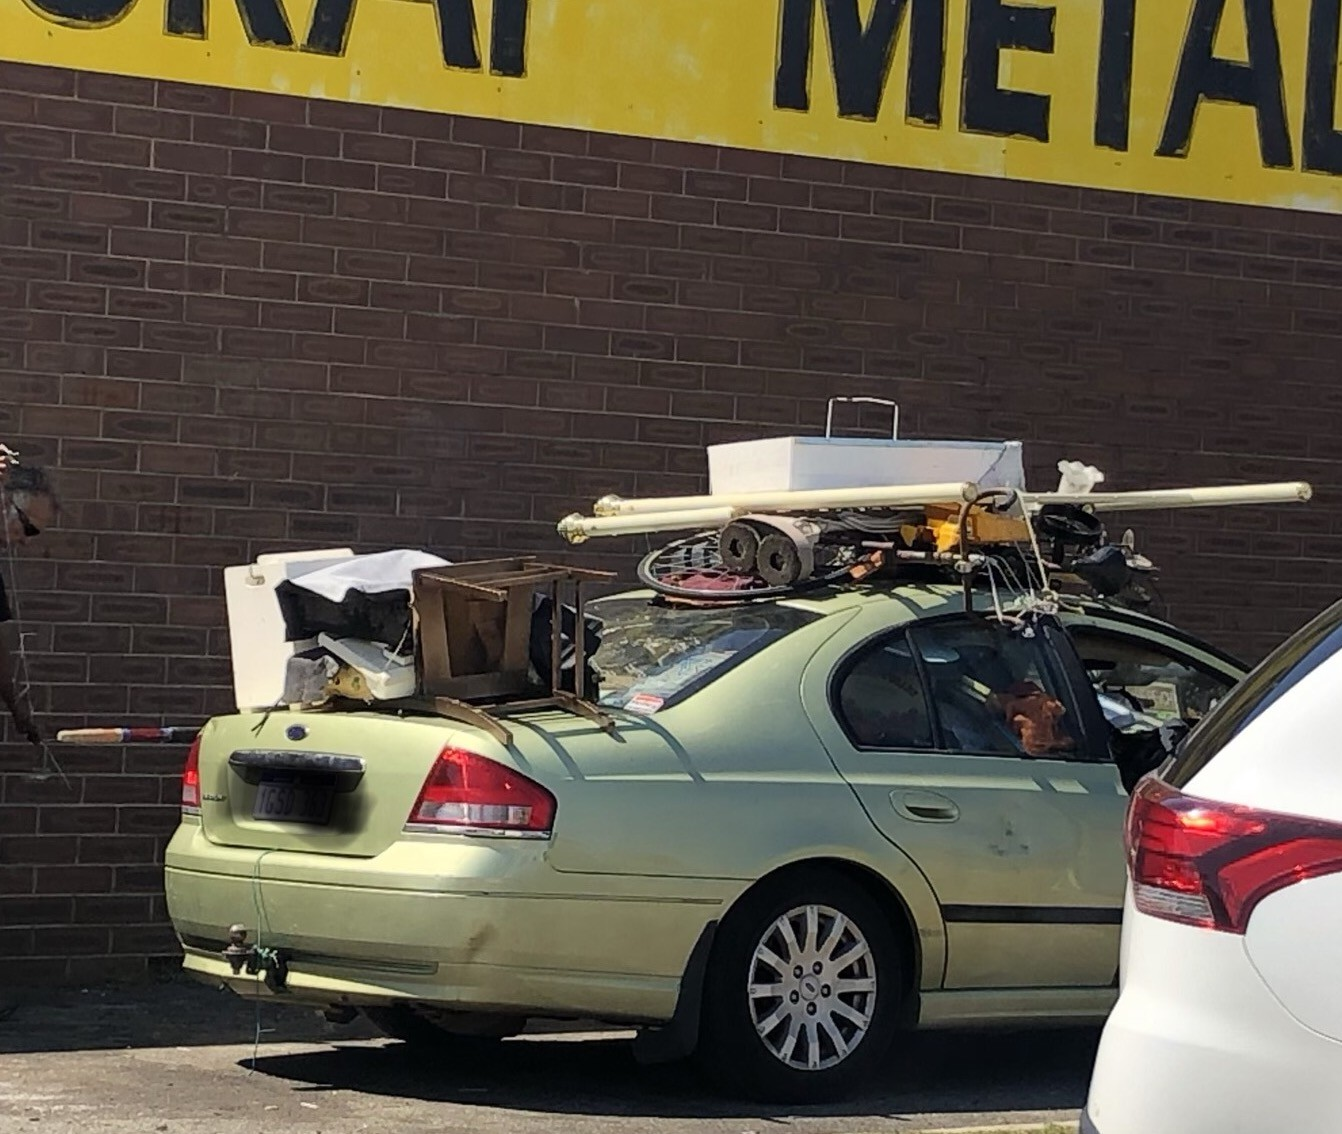 Don'ts When Travelling with a Roof Rack